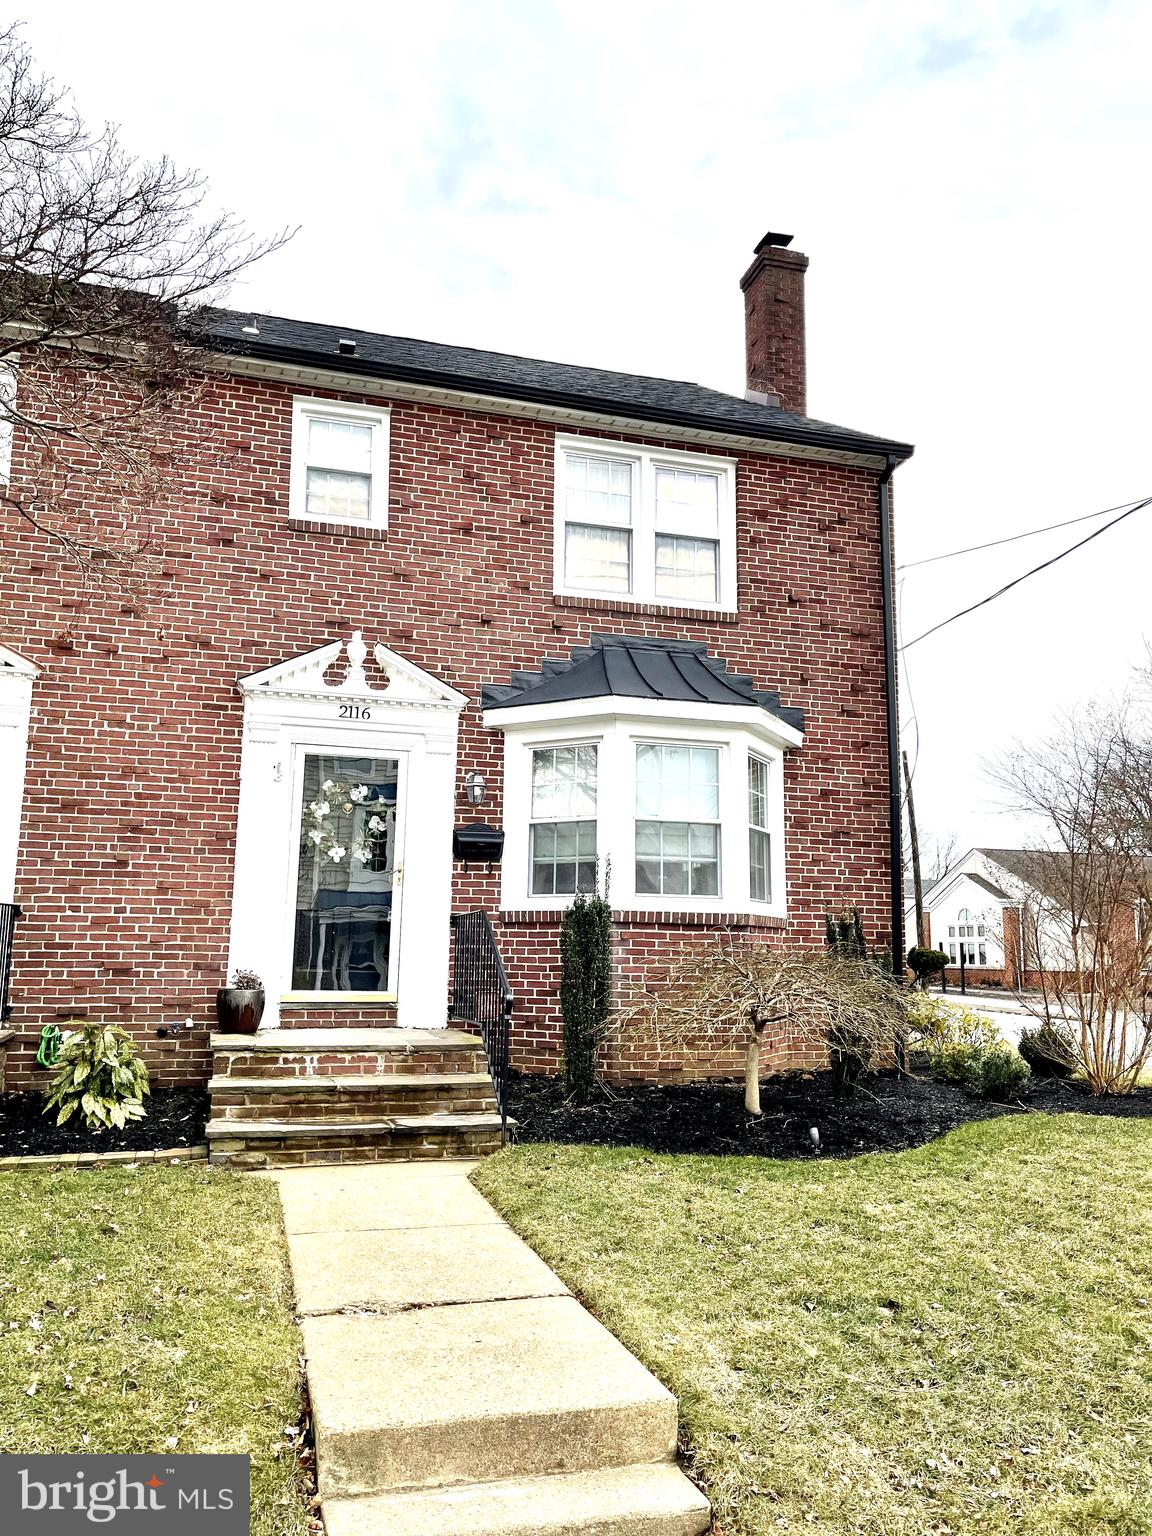 Visit this home virtually: http://www.vht.com/434139440/IDXS - Welcome to 2116 Pyle St., this stunni